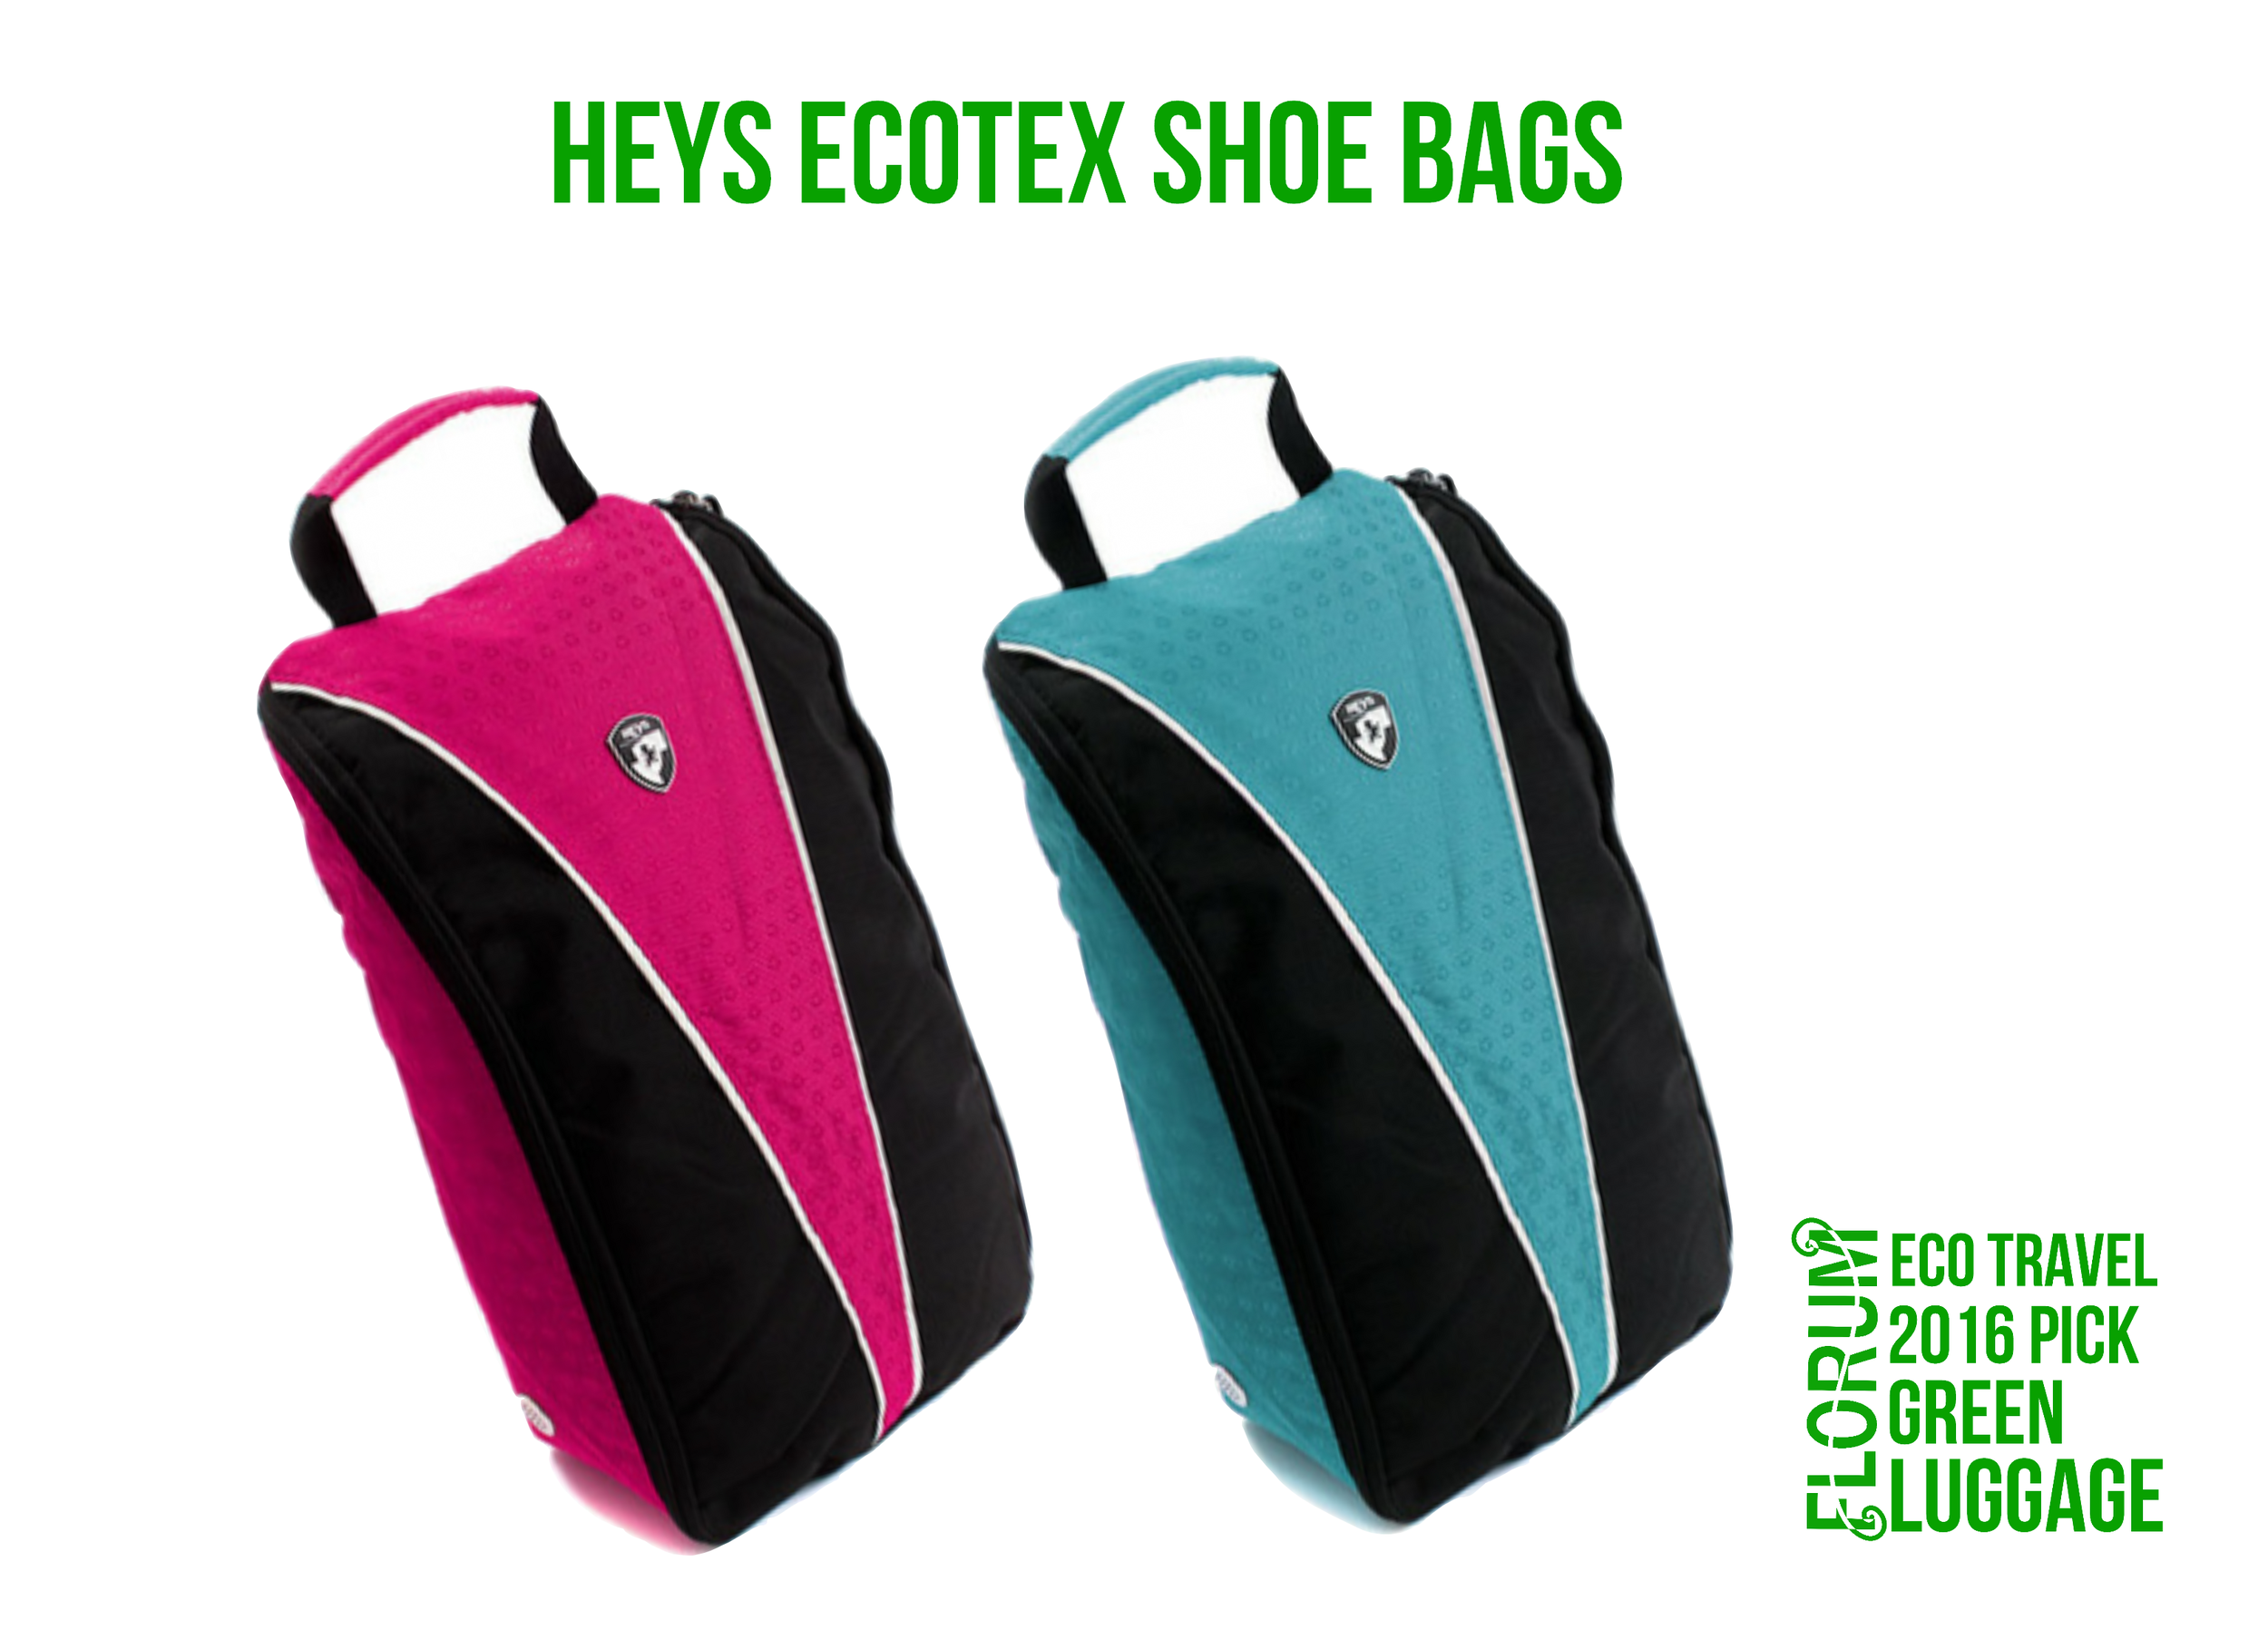 Florum Eco Travel 2016 Green Luggage Pick - Heys EcoTex Shoe Bags - by Noelle Lynne.png